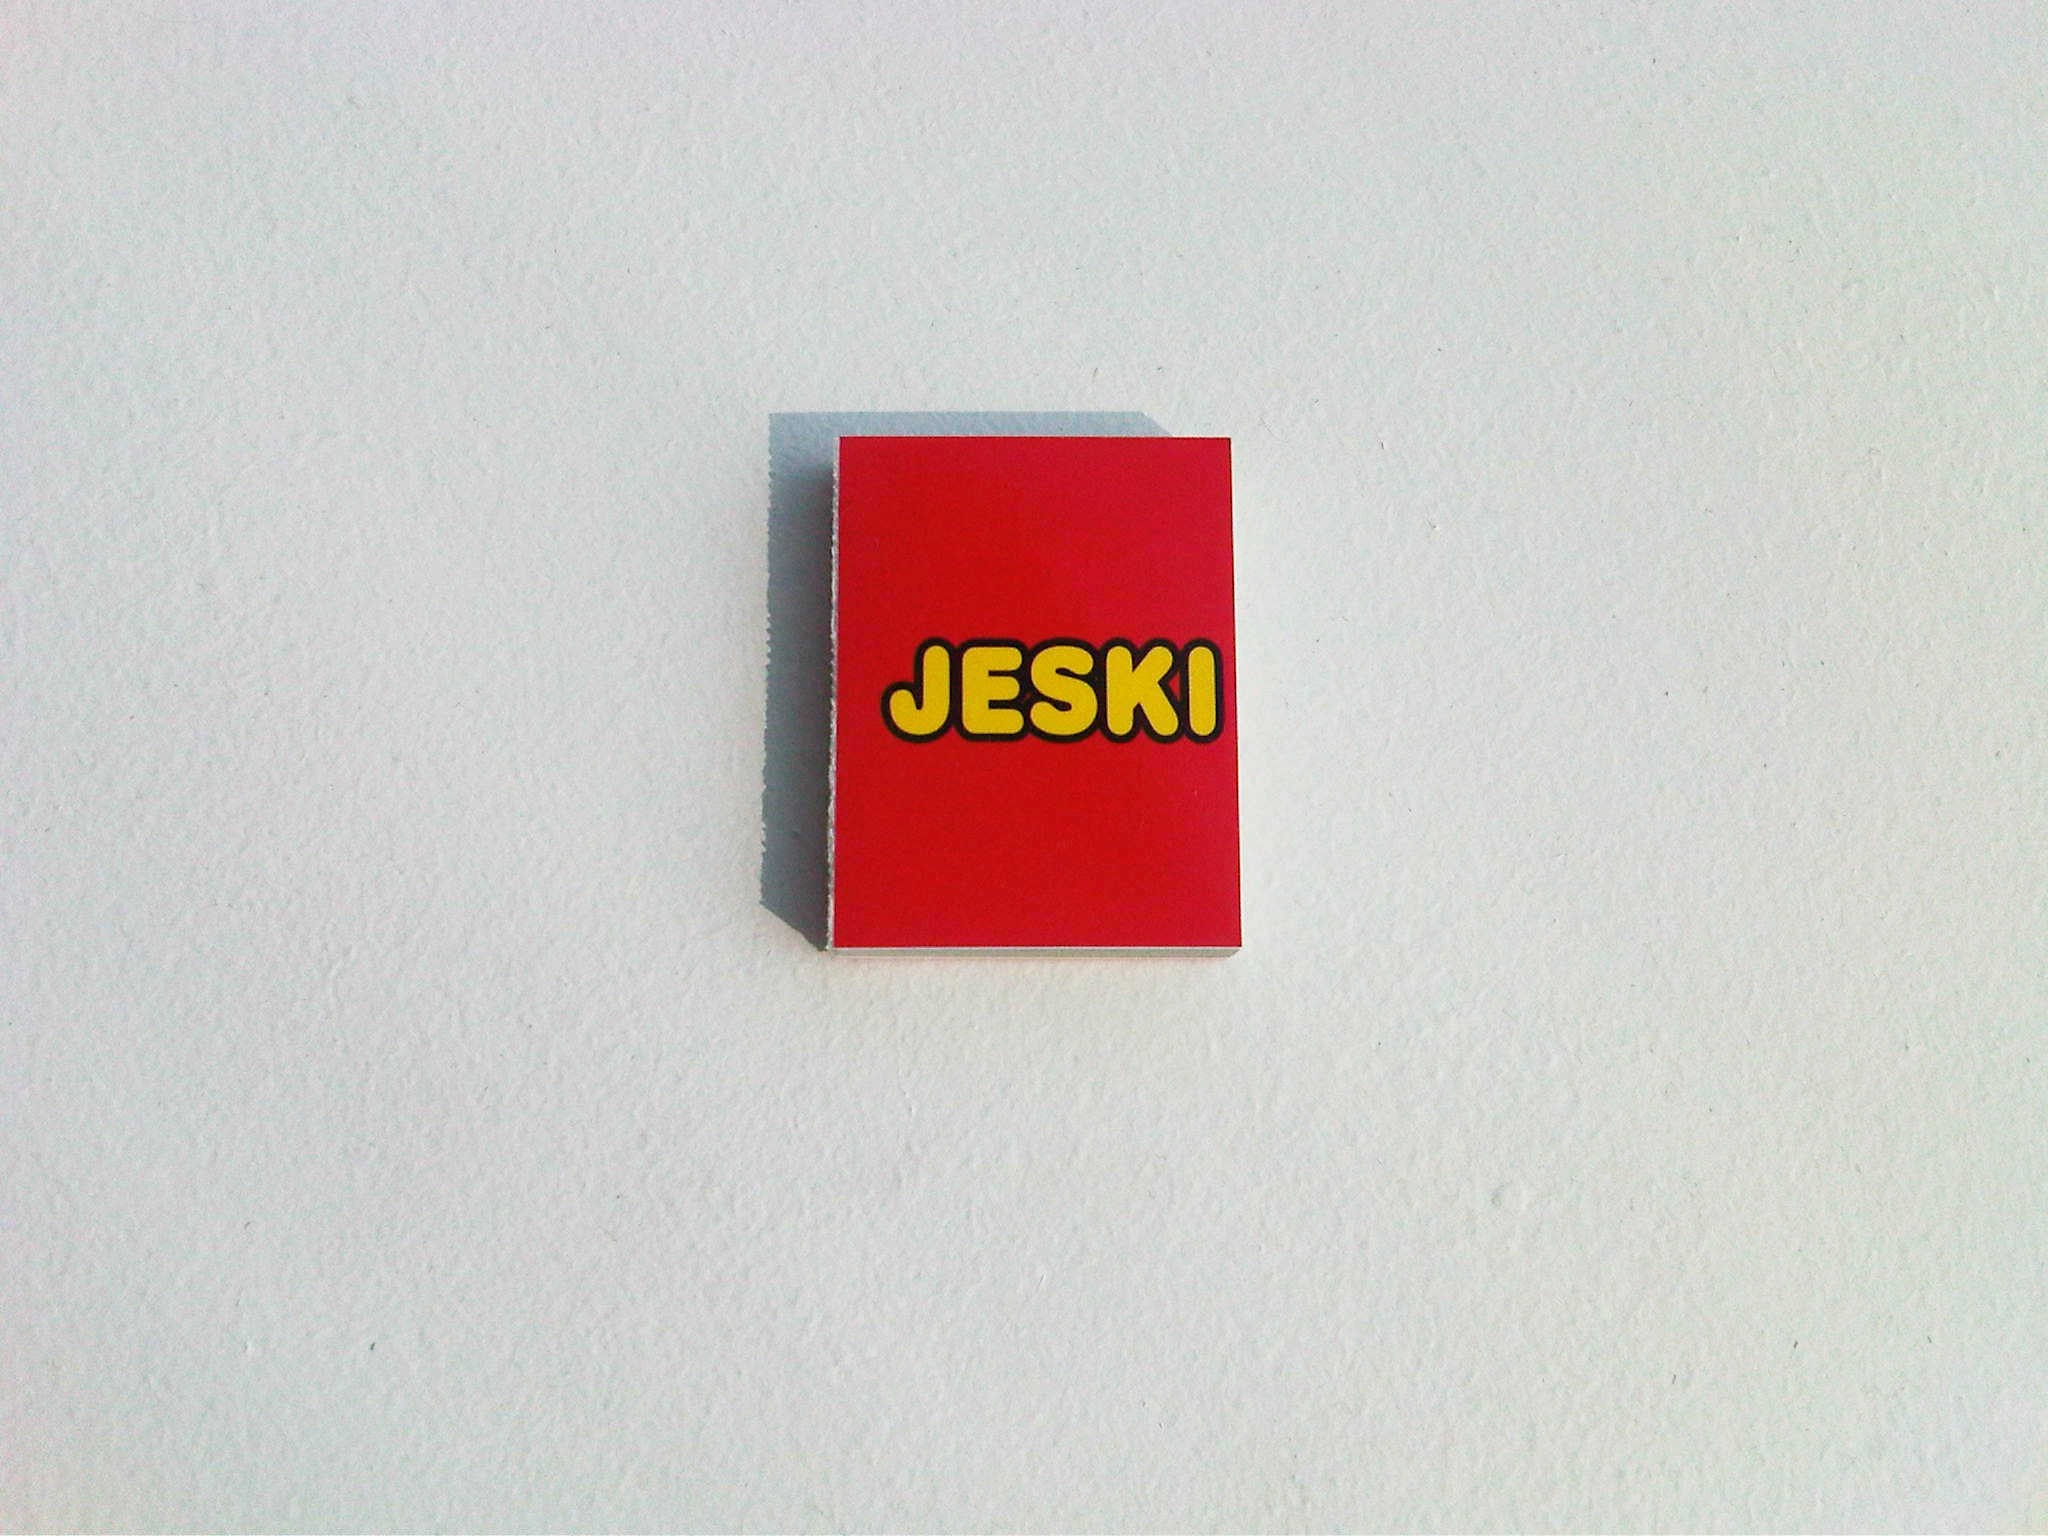 Jeski ABC Book; apologies to Jeski for hot-linking this image.